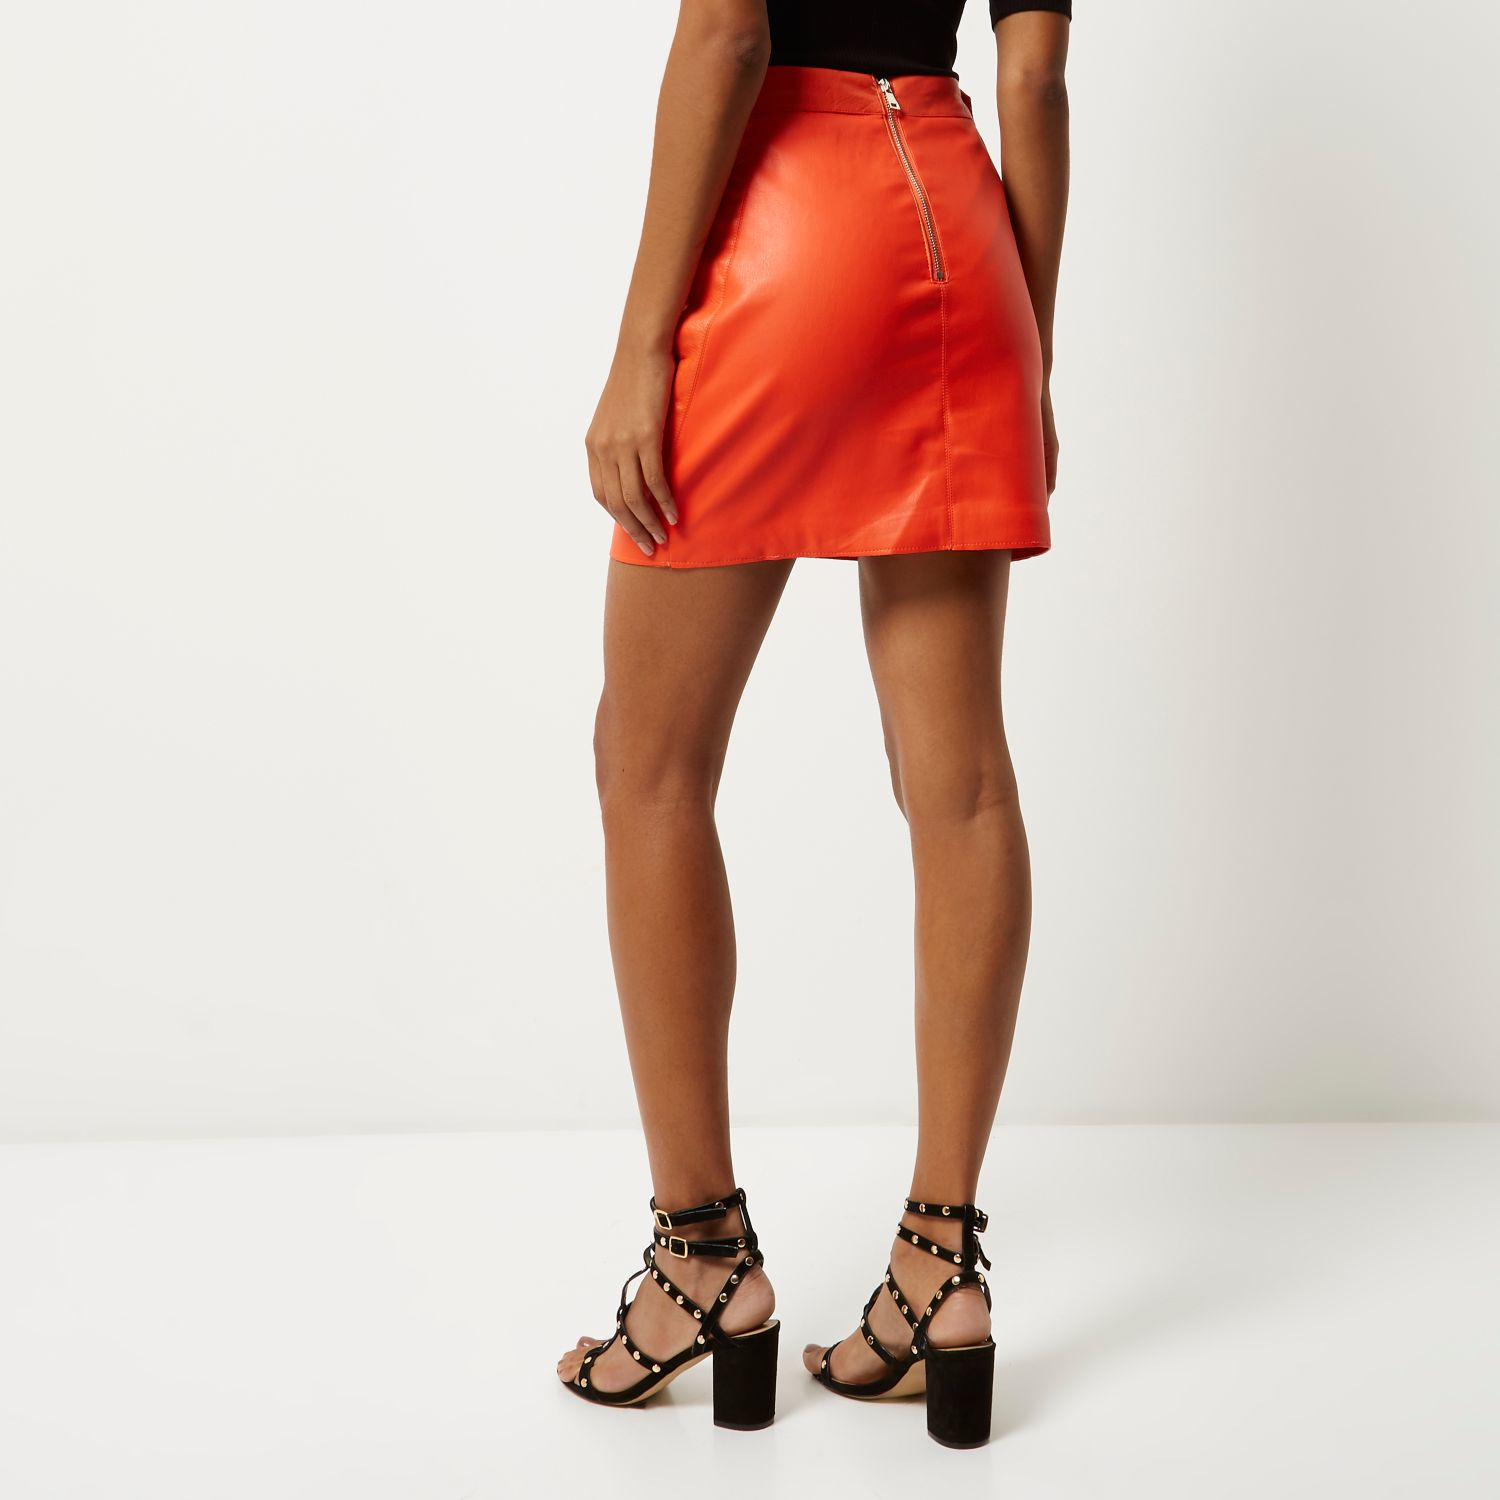 River island Orange Leather Look Mini Skirt in Orange | Lyst